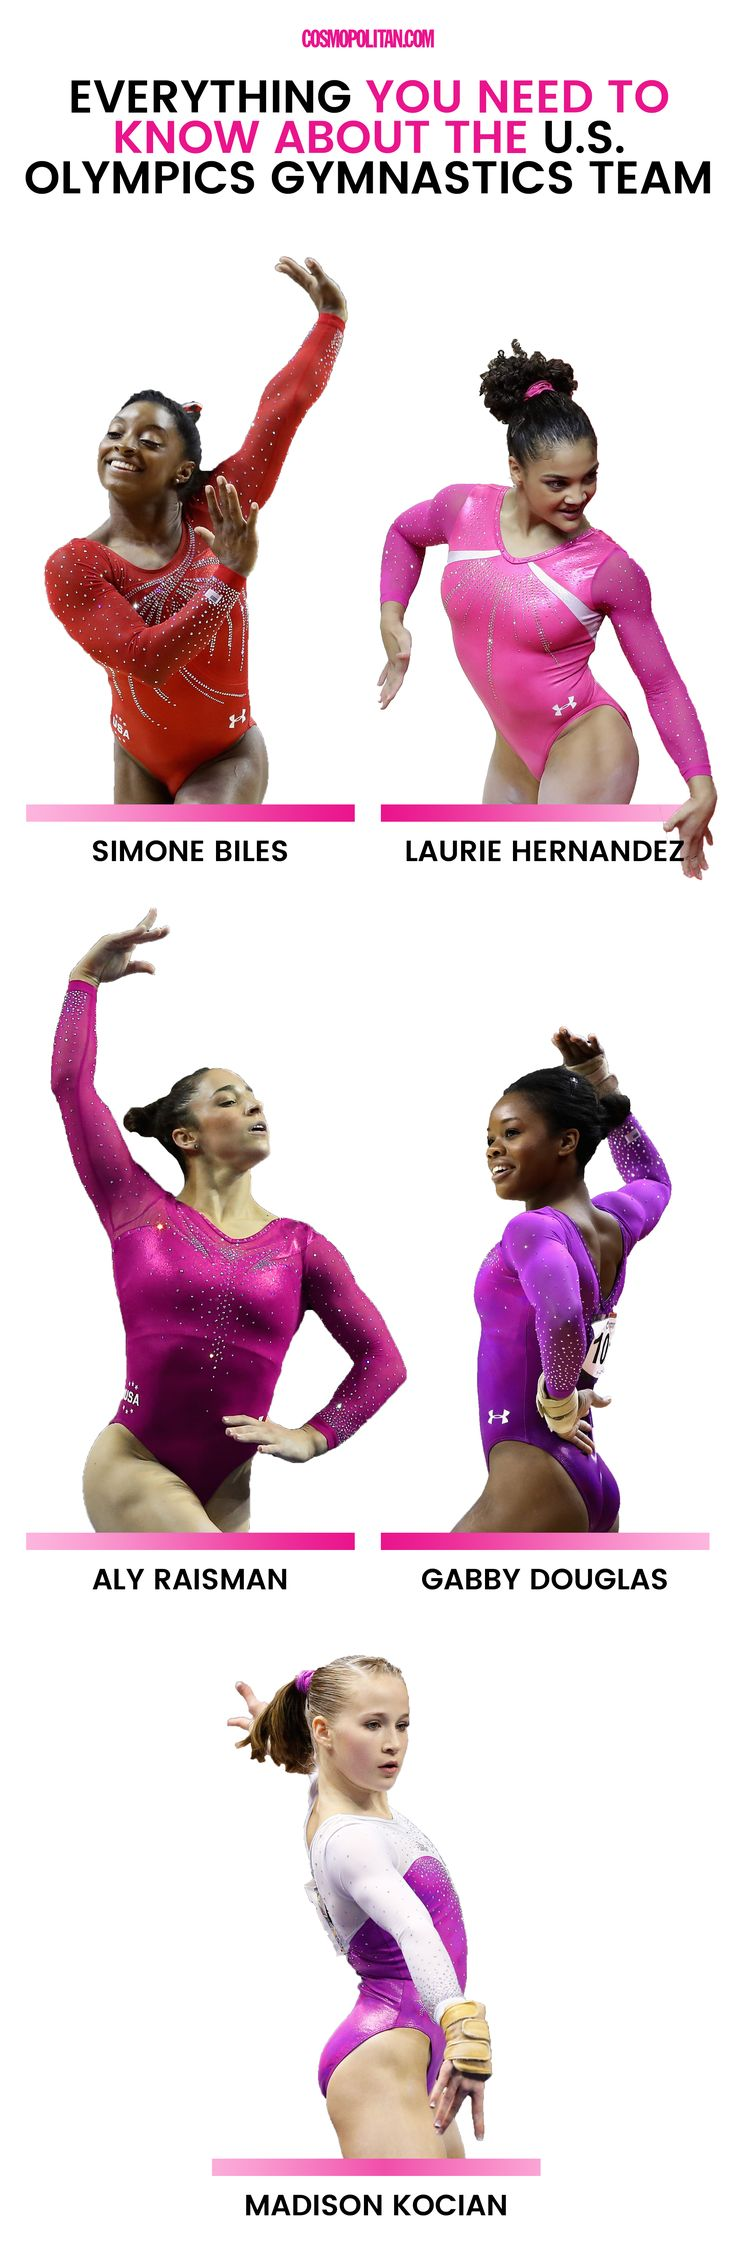 Everything You Need to Know About the U.S. Olympics Gymnastics Team